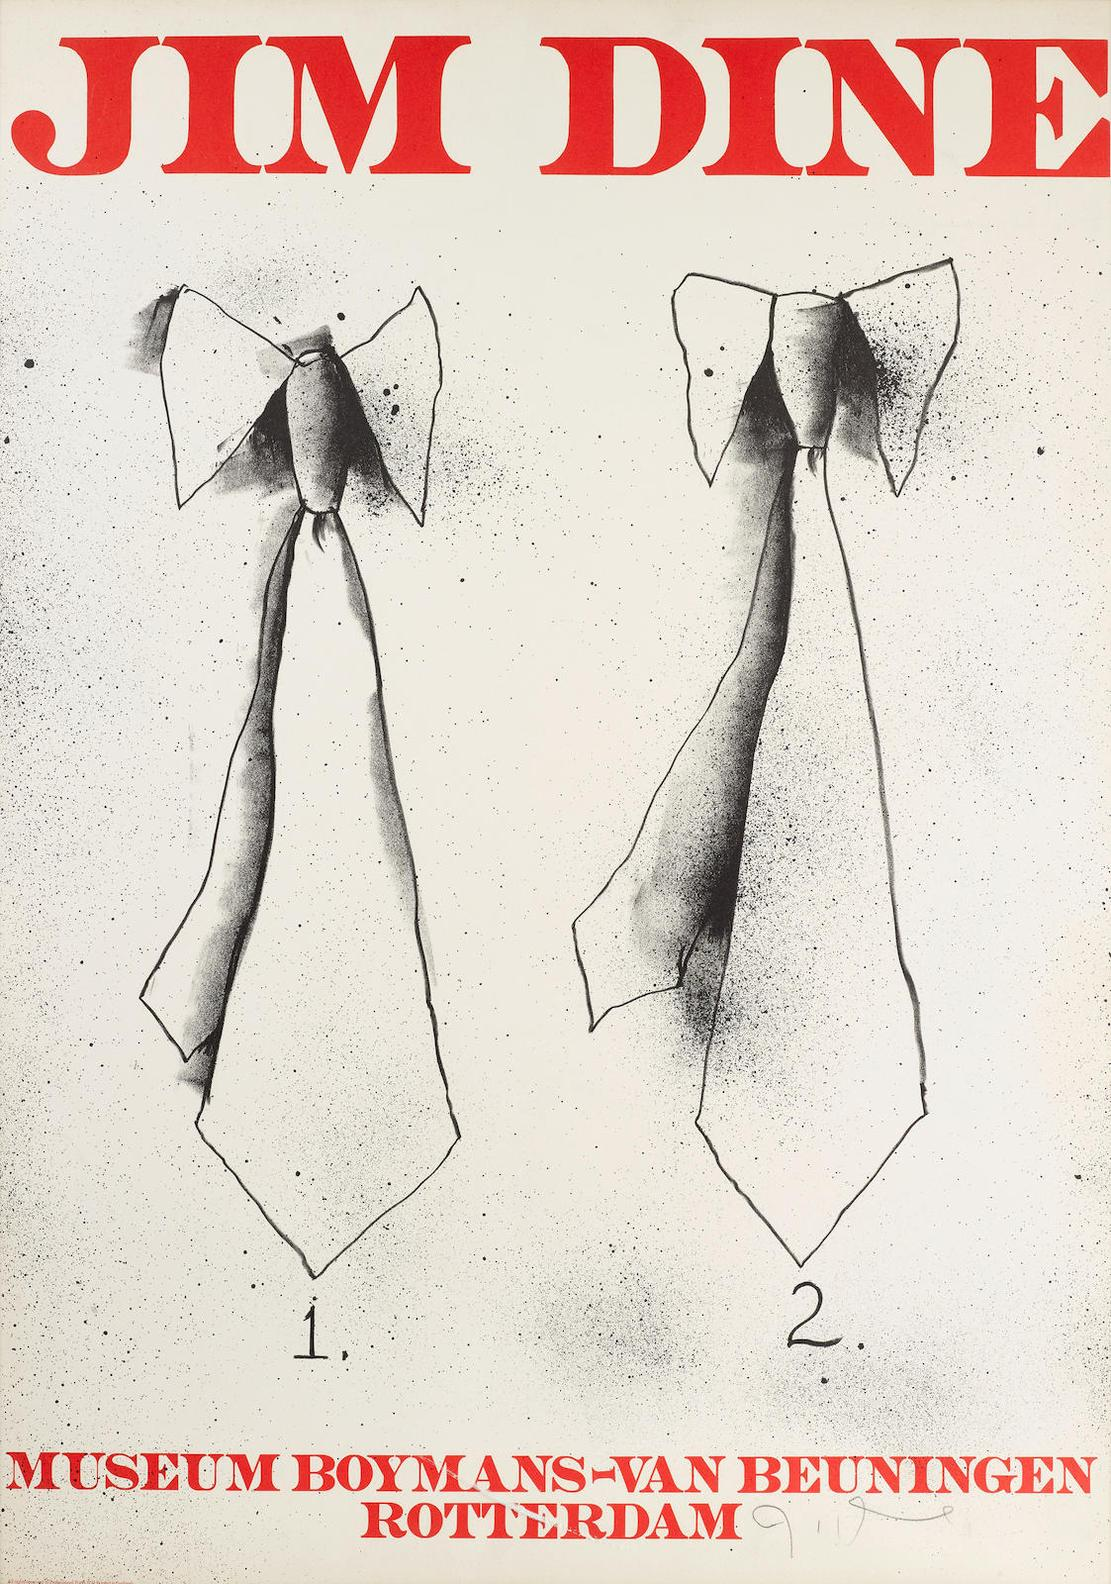 Jim Dine-Museum Boynans-Van Beuningen; Paris Review-1975